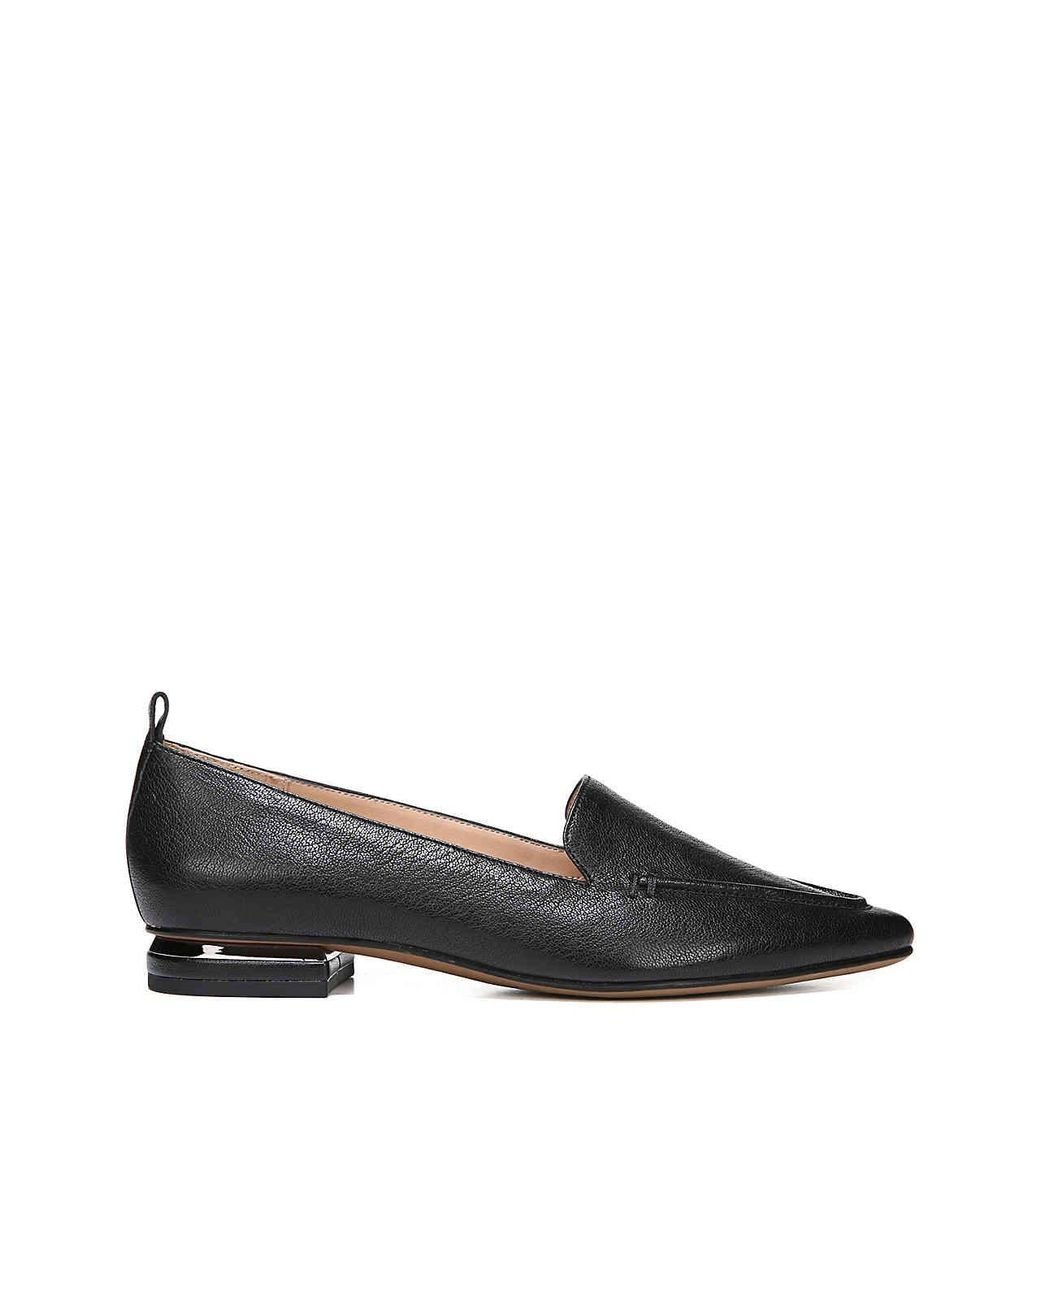 a4b49914a51 Lyst - Franco Sarto Susie Loafer in Black